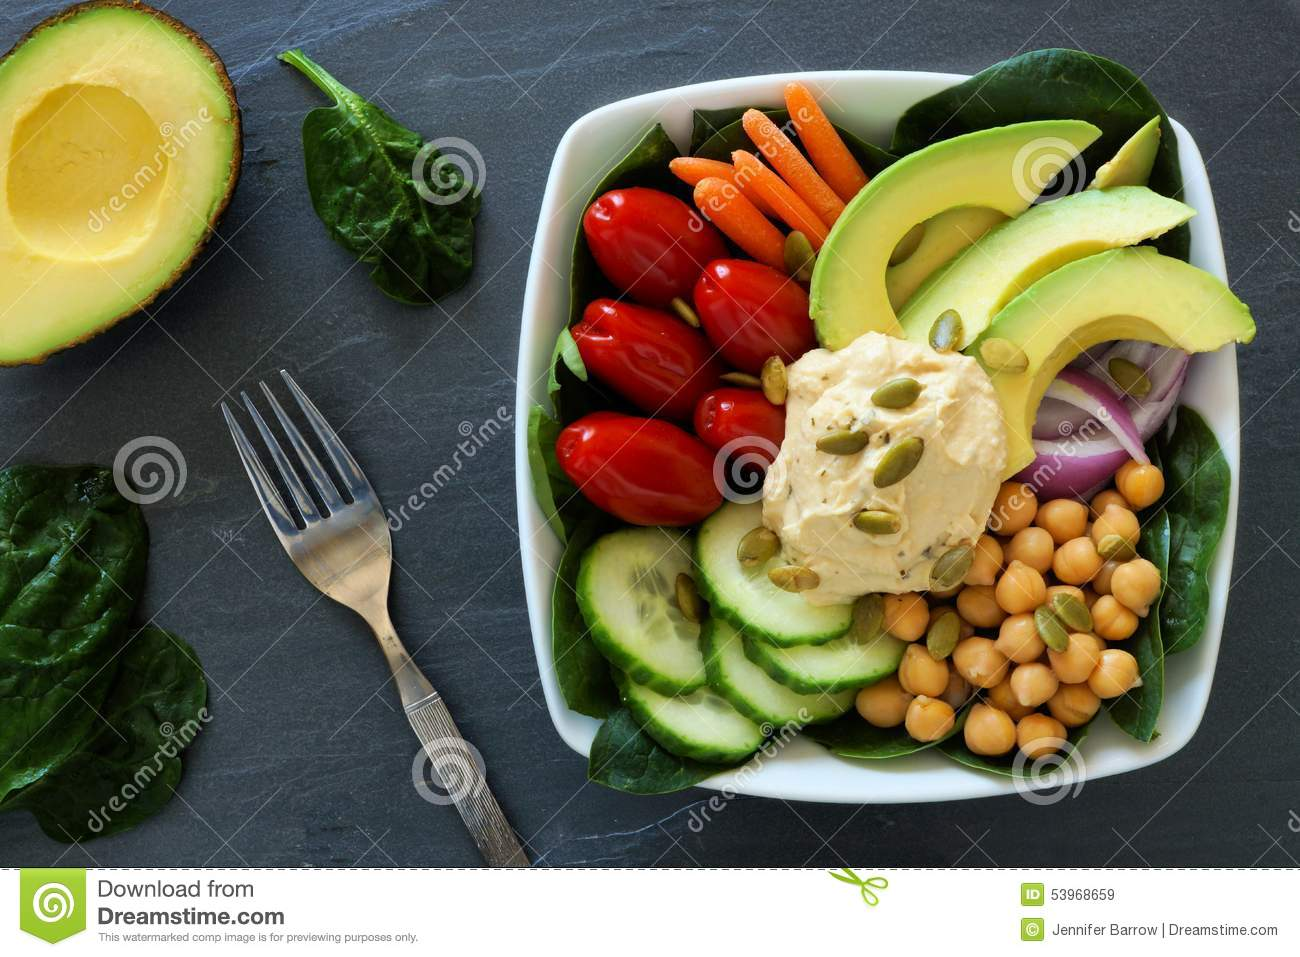 Breakfast Lunch Snacks Dinner Dessert Side Dishes Soup Salads DISH TYPE Bread & Rolls Instant Pot Muffins Pasta Popsicles and Frozen Treats Quick Dish Dinner Smoothies Slow Cook.